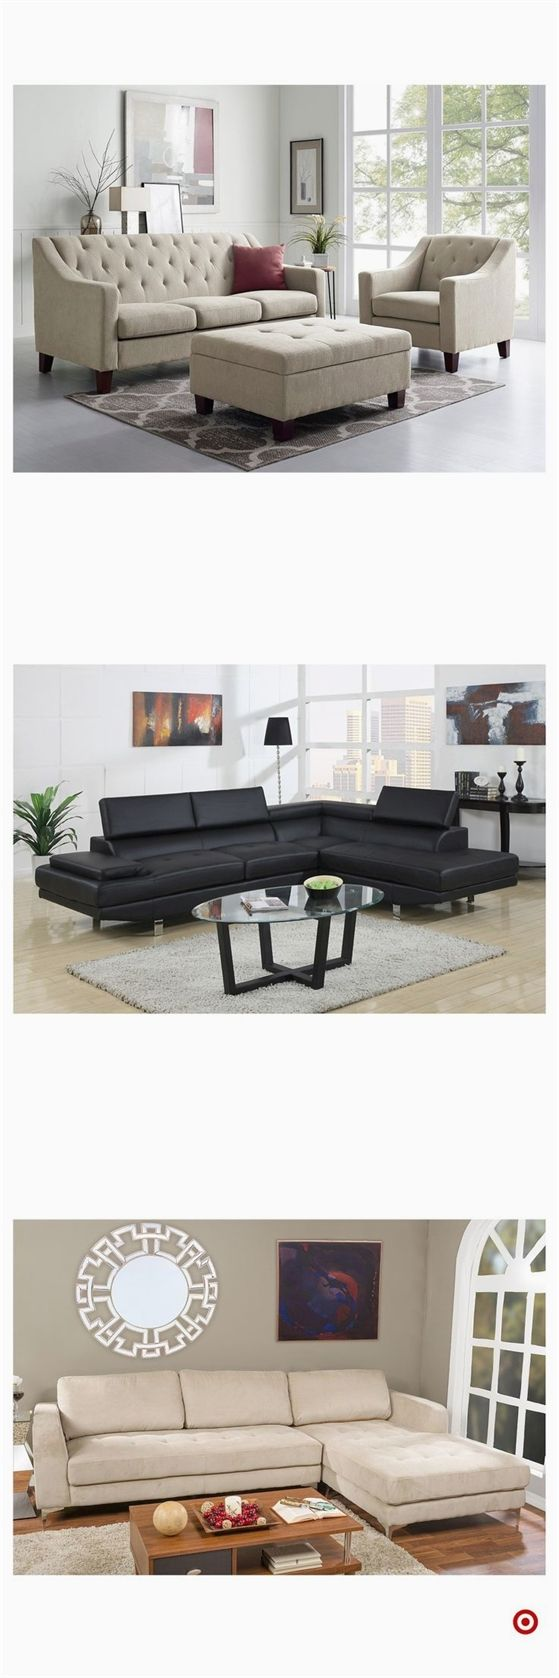 Shop Target For Sectional Sofas You Will Love At Great Low